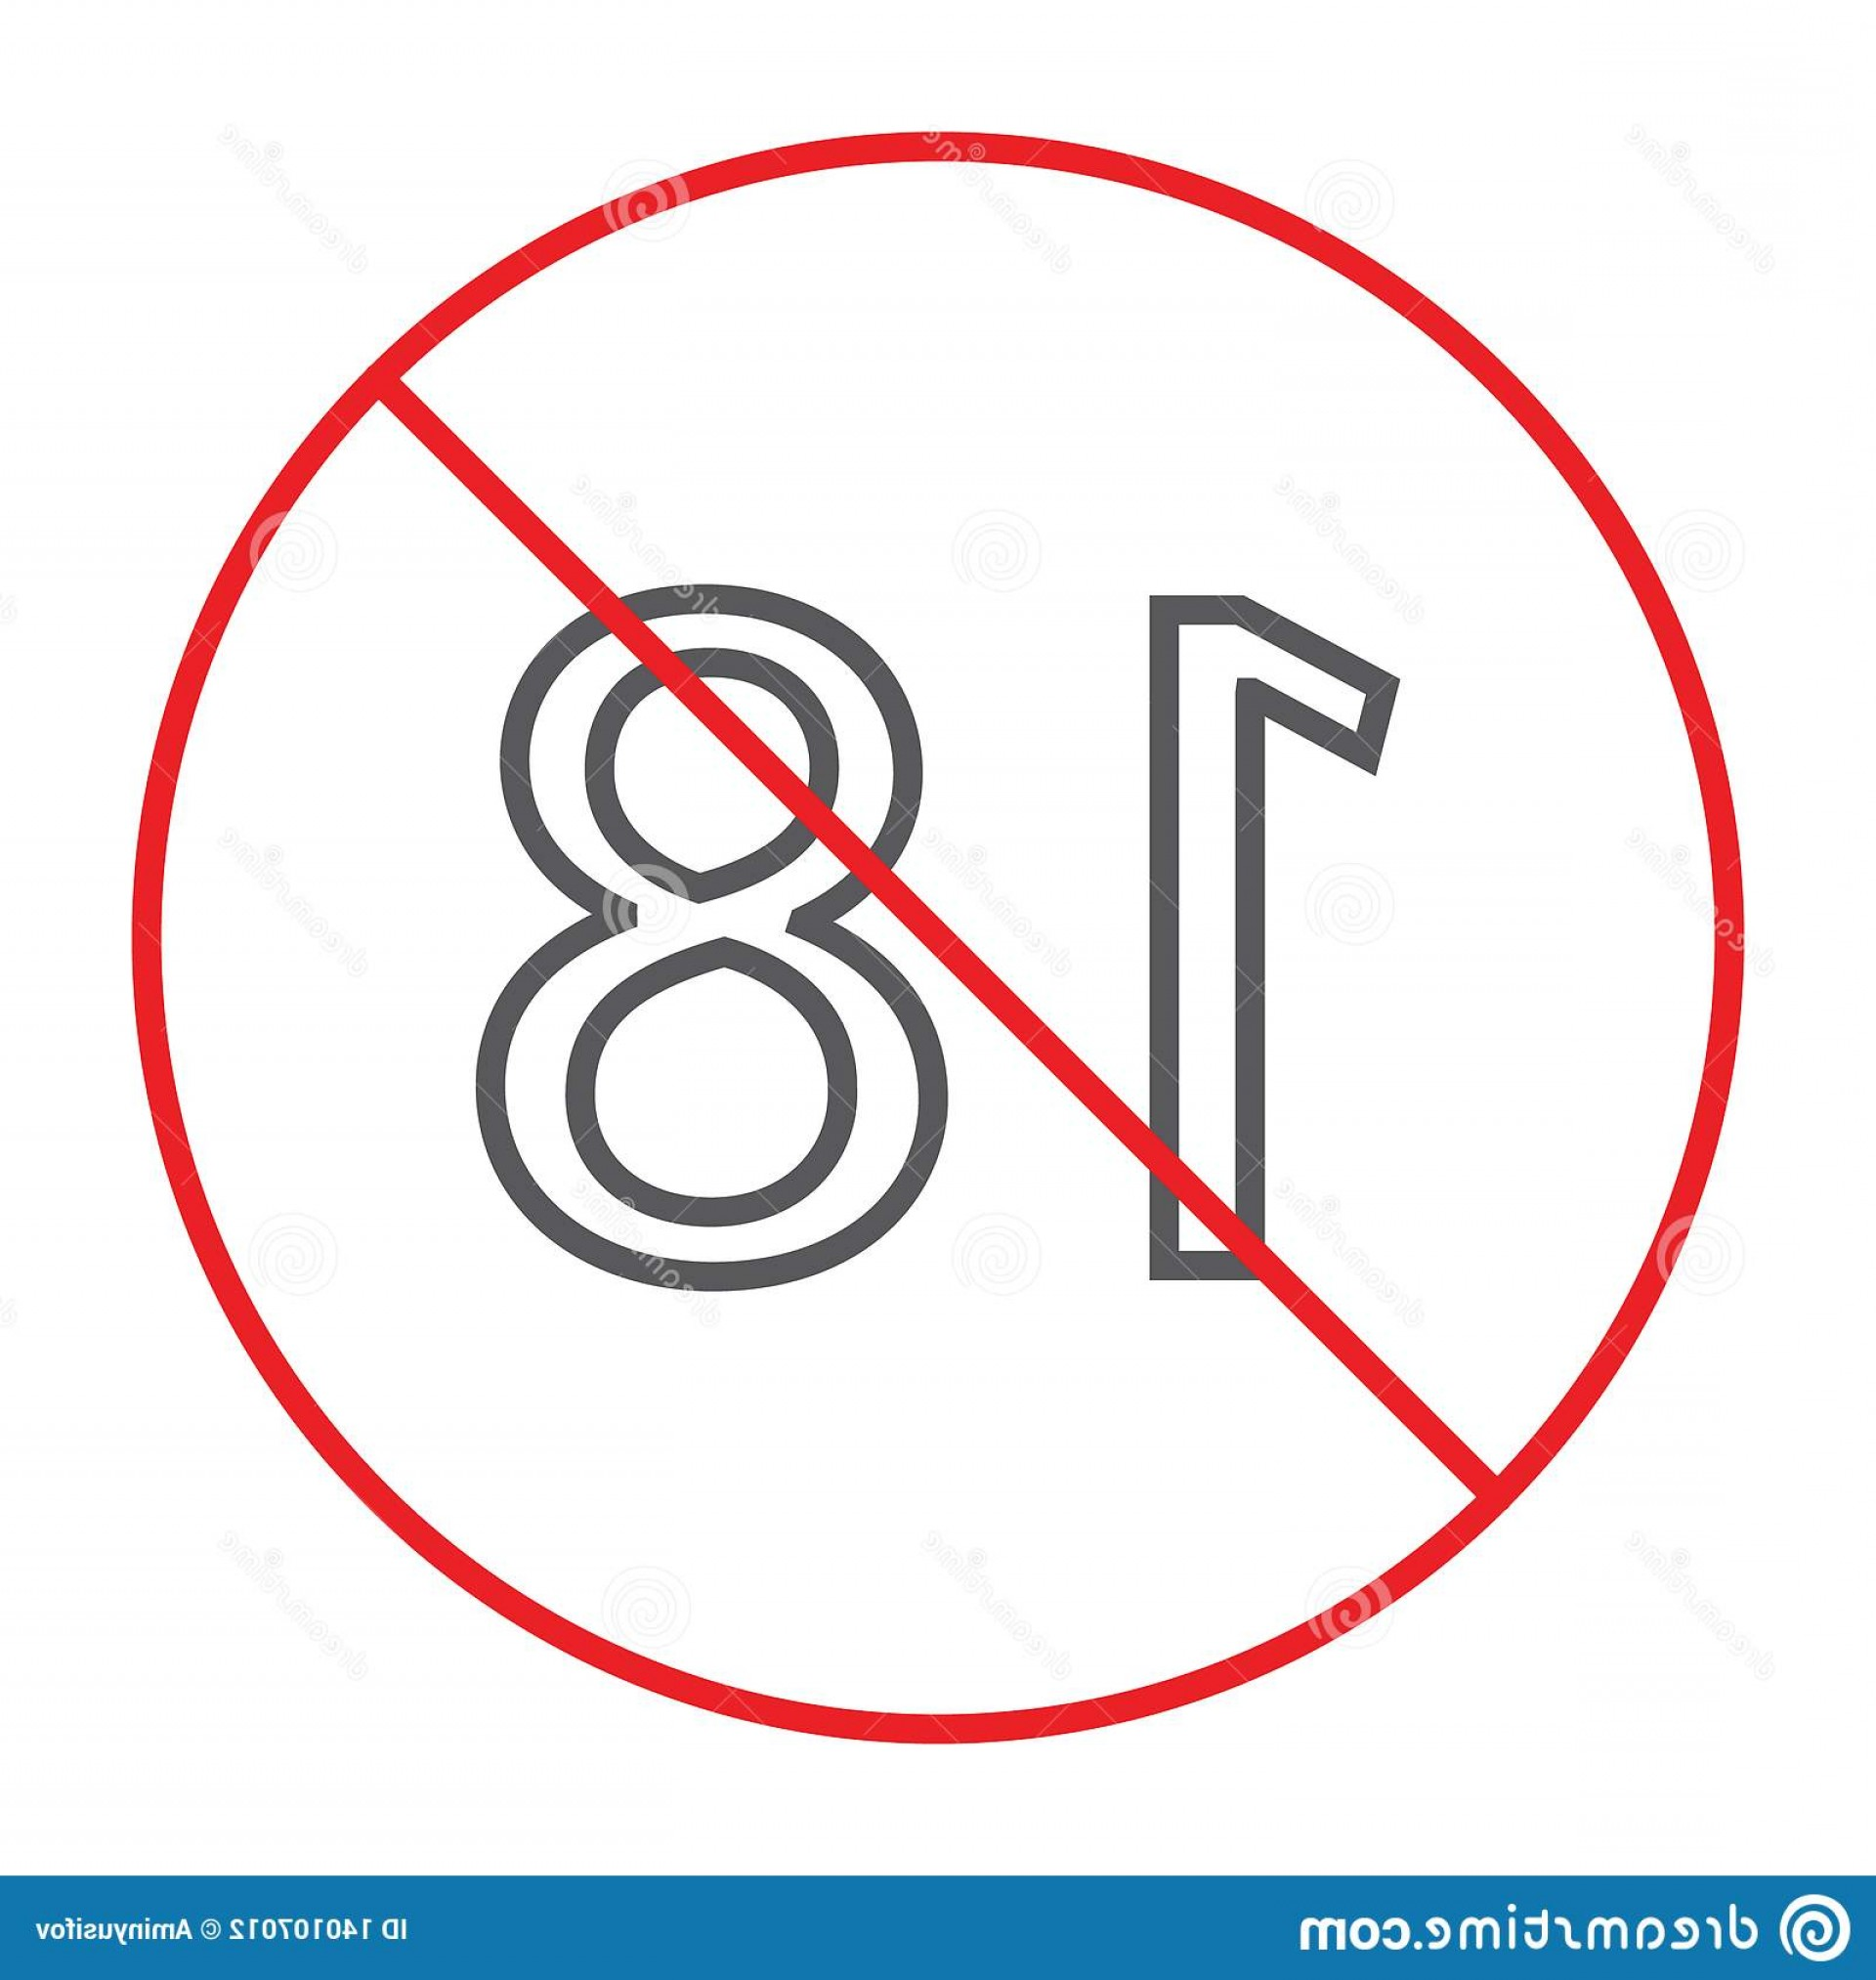 Vector Ban Plus: No Plus Thin Line Icon Prohibited Ban Age Restriction Sign Vector Graphics Linear Pattern White Background Eps Image